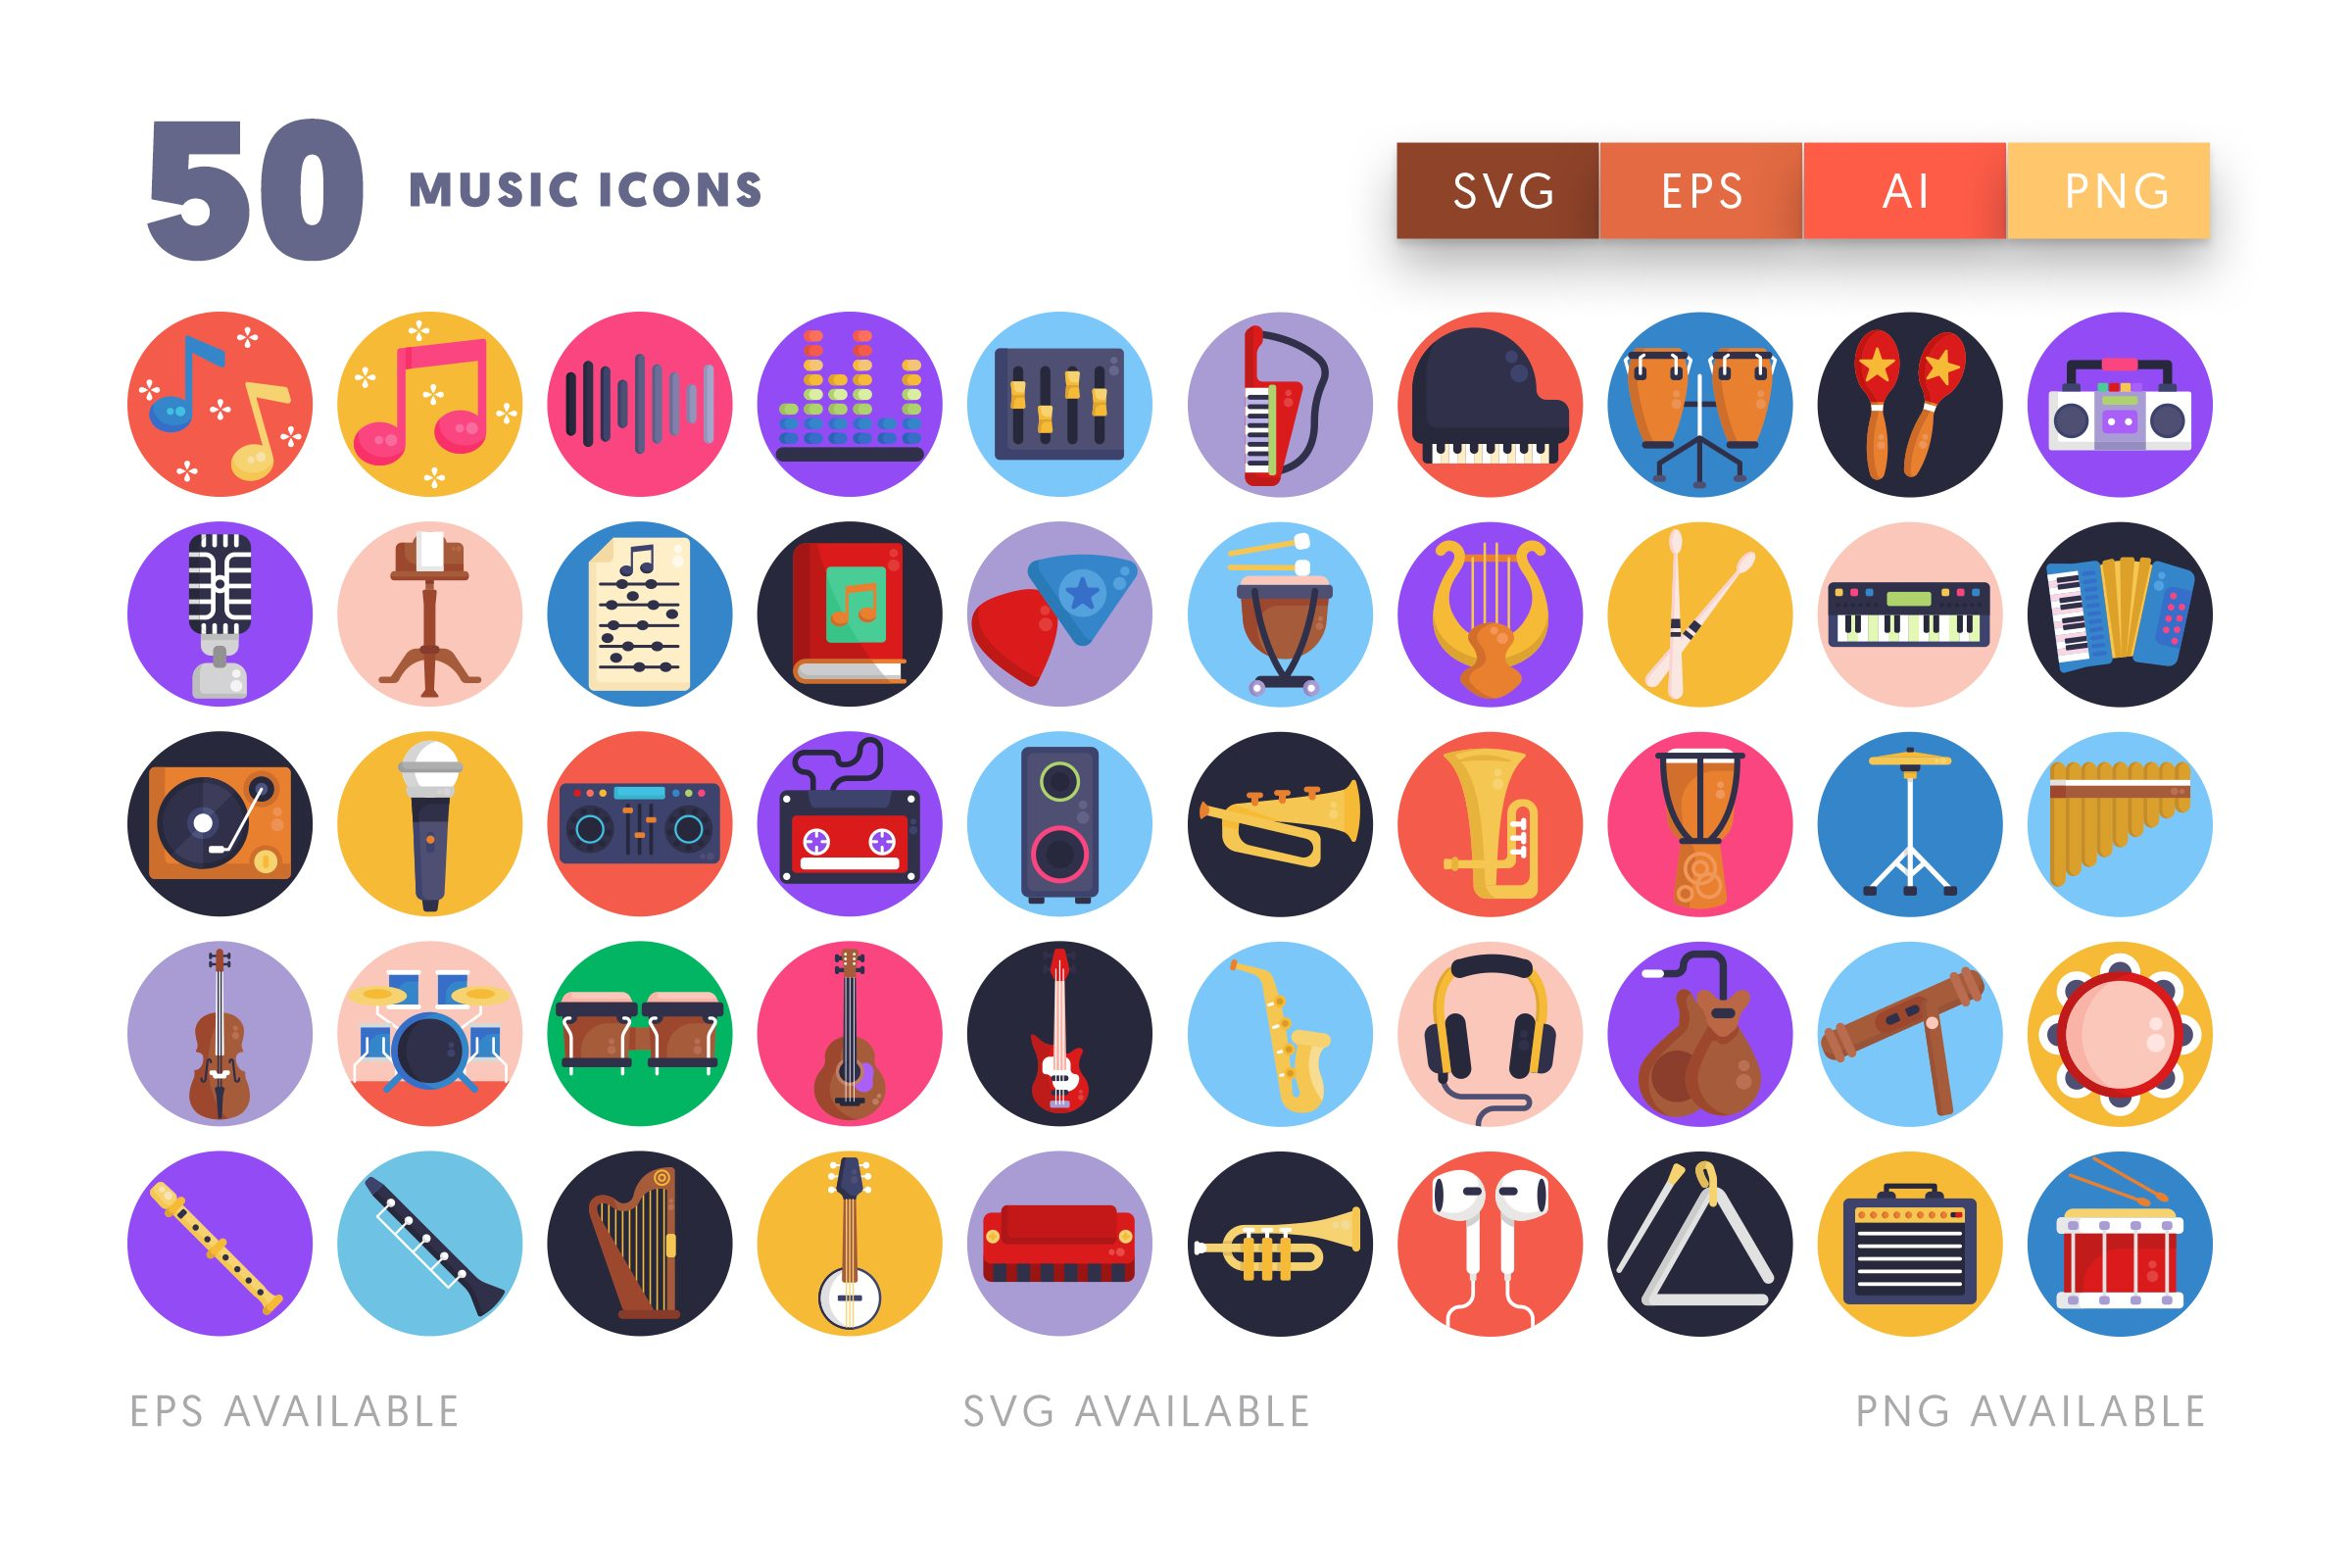 Music icons png/svg/eps